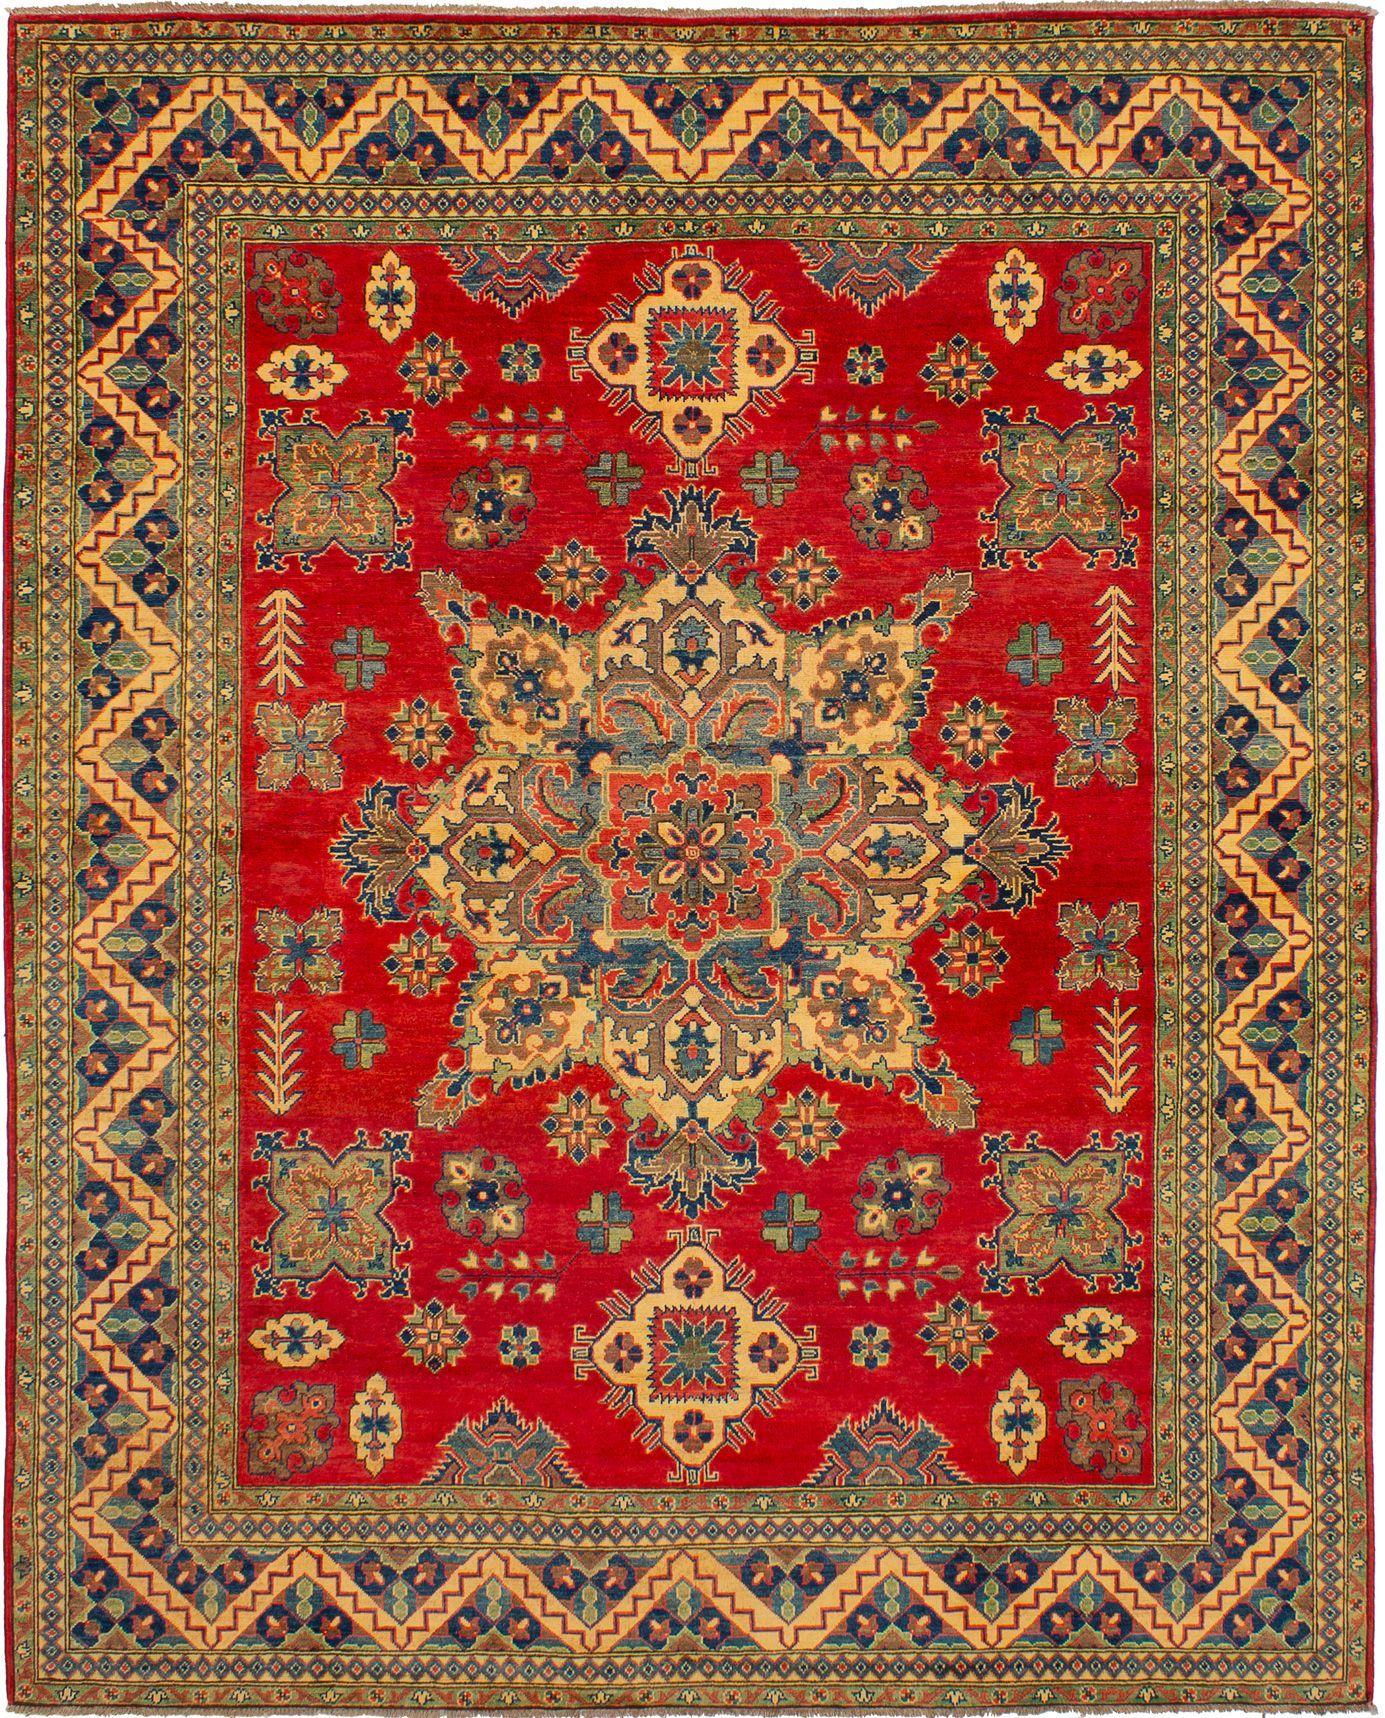 """Hand-knotted Finest Gazni Red Wool Rug 8'0"""" x 9'10""""  Size: 8'0"""" x 9'10"""""""